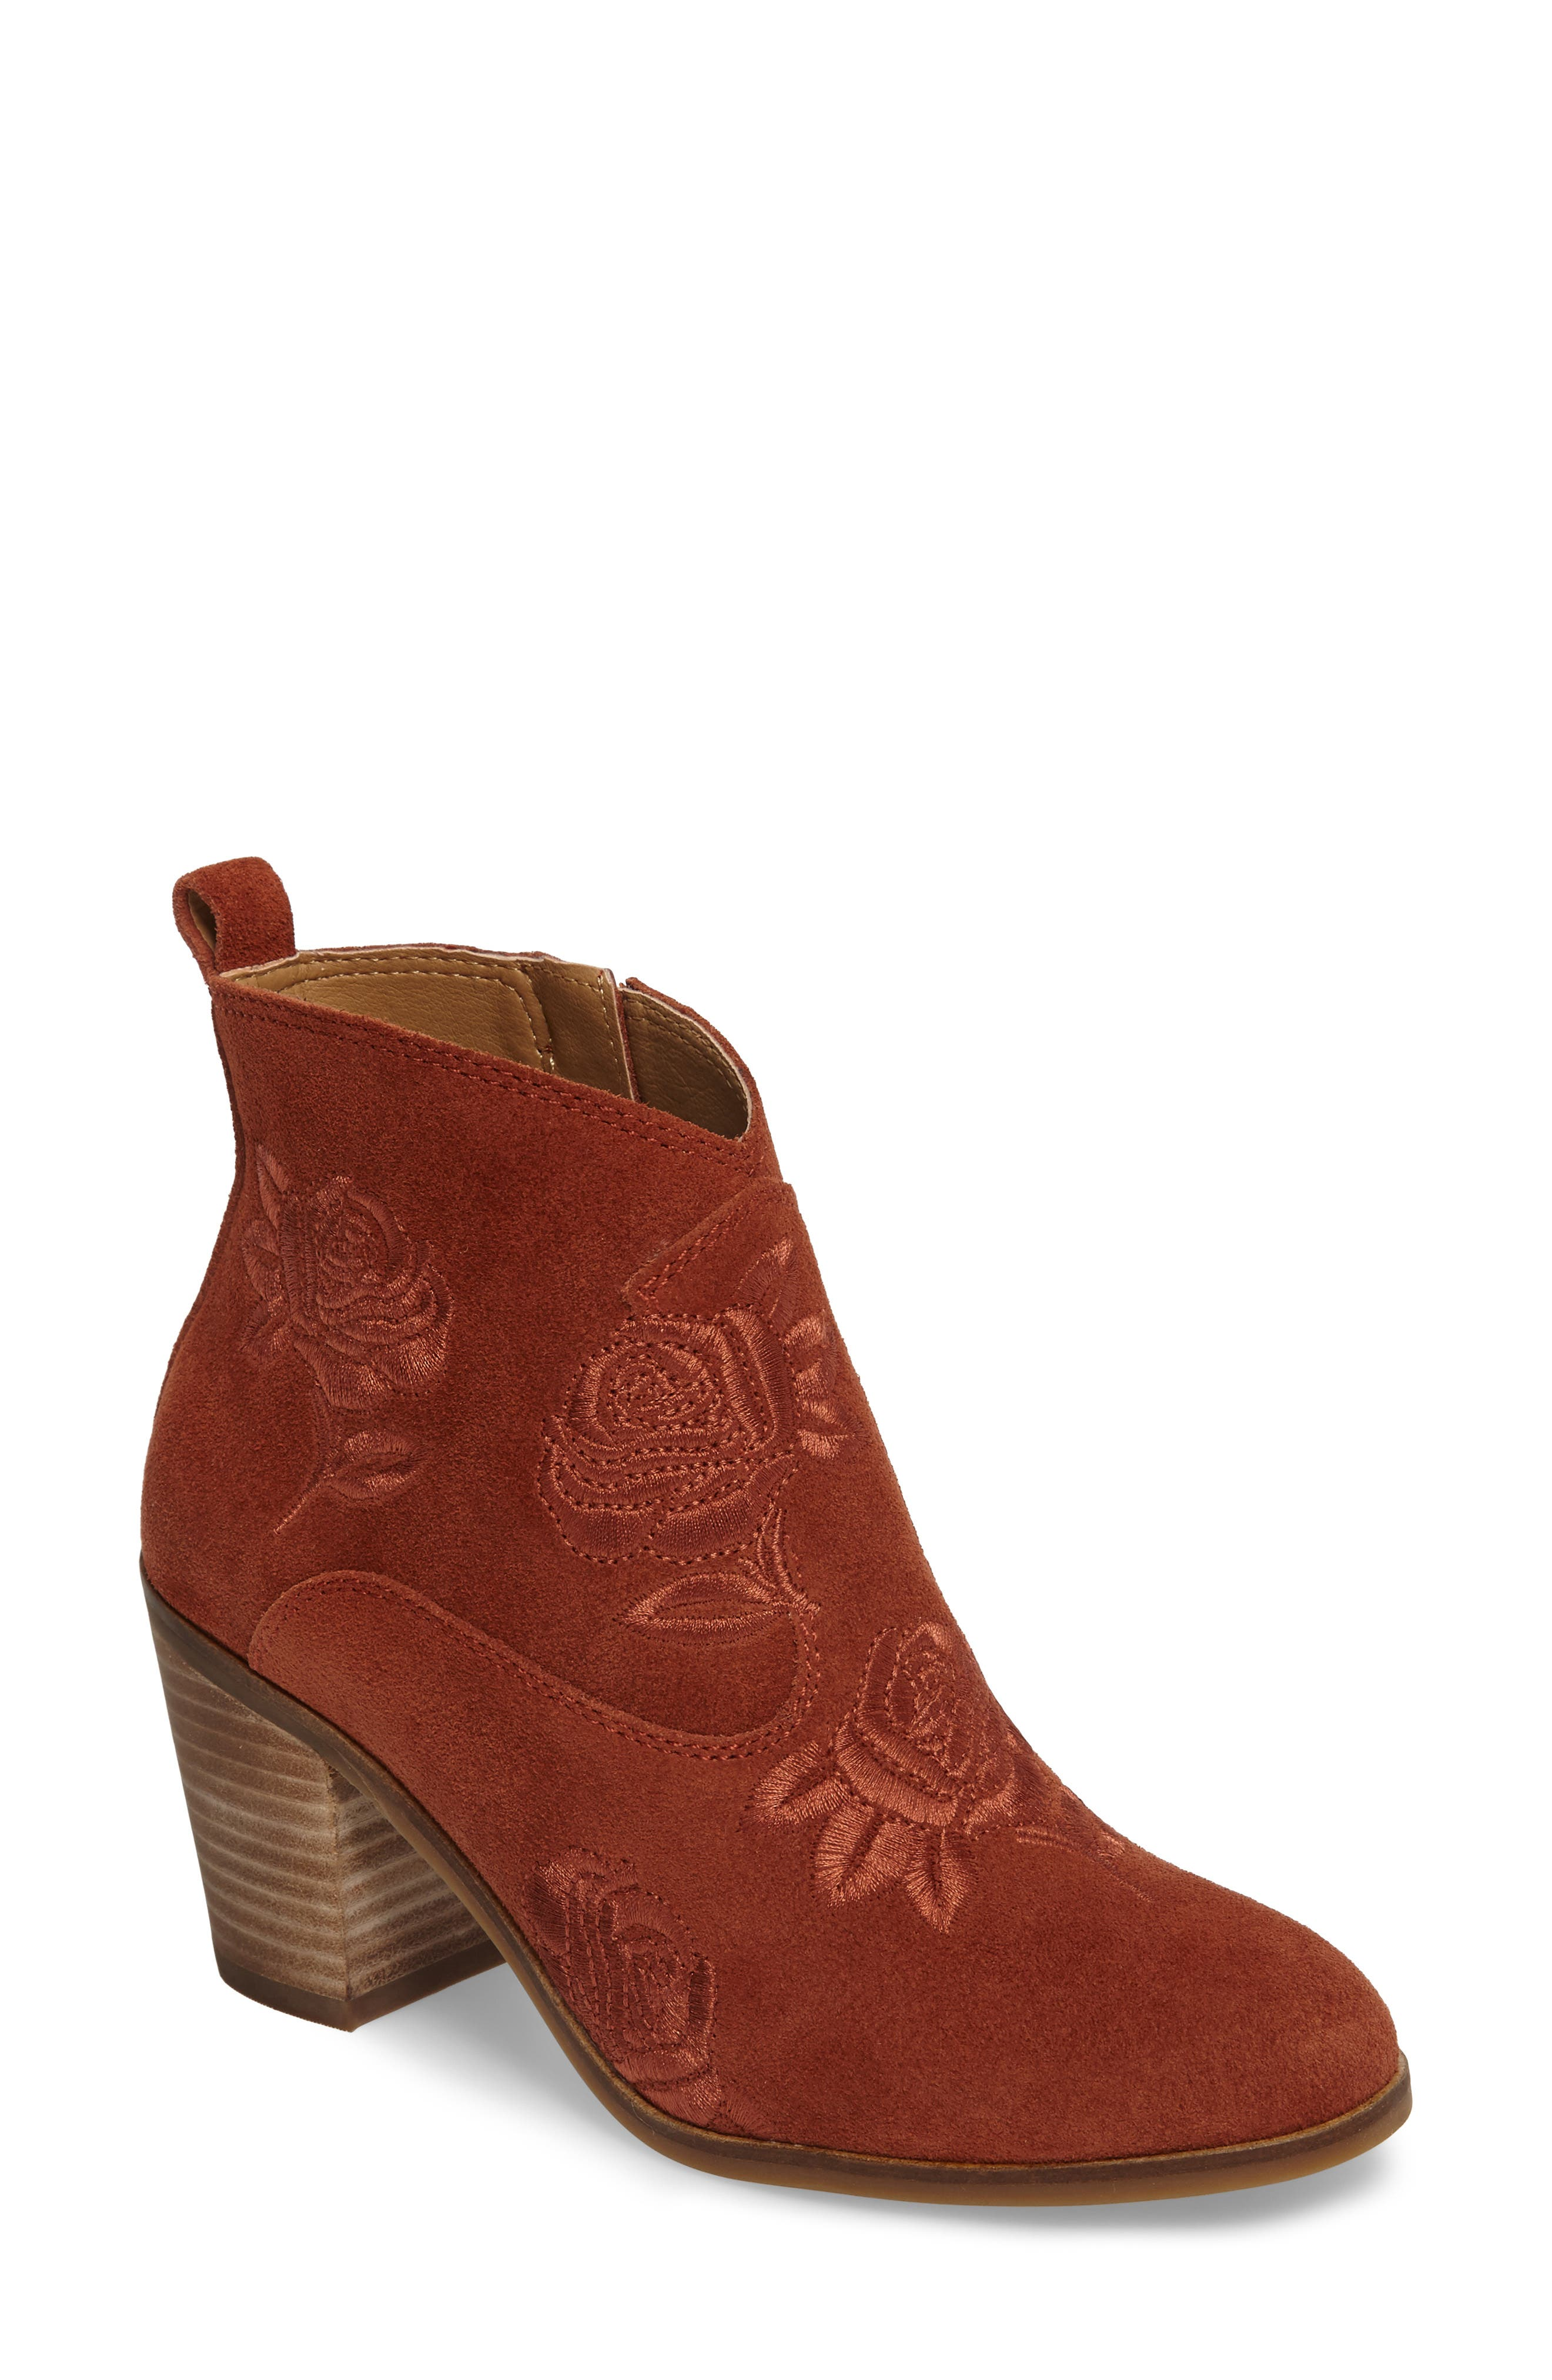 Pexton Embroidered Bootie,                             Main thumbnail 1, color,                             Red Oak Suede